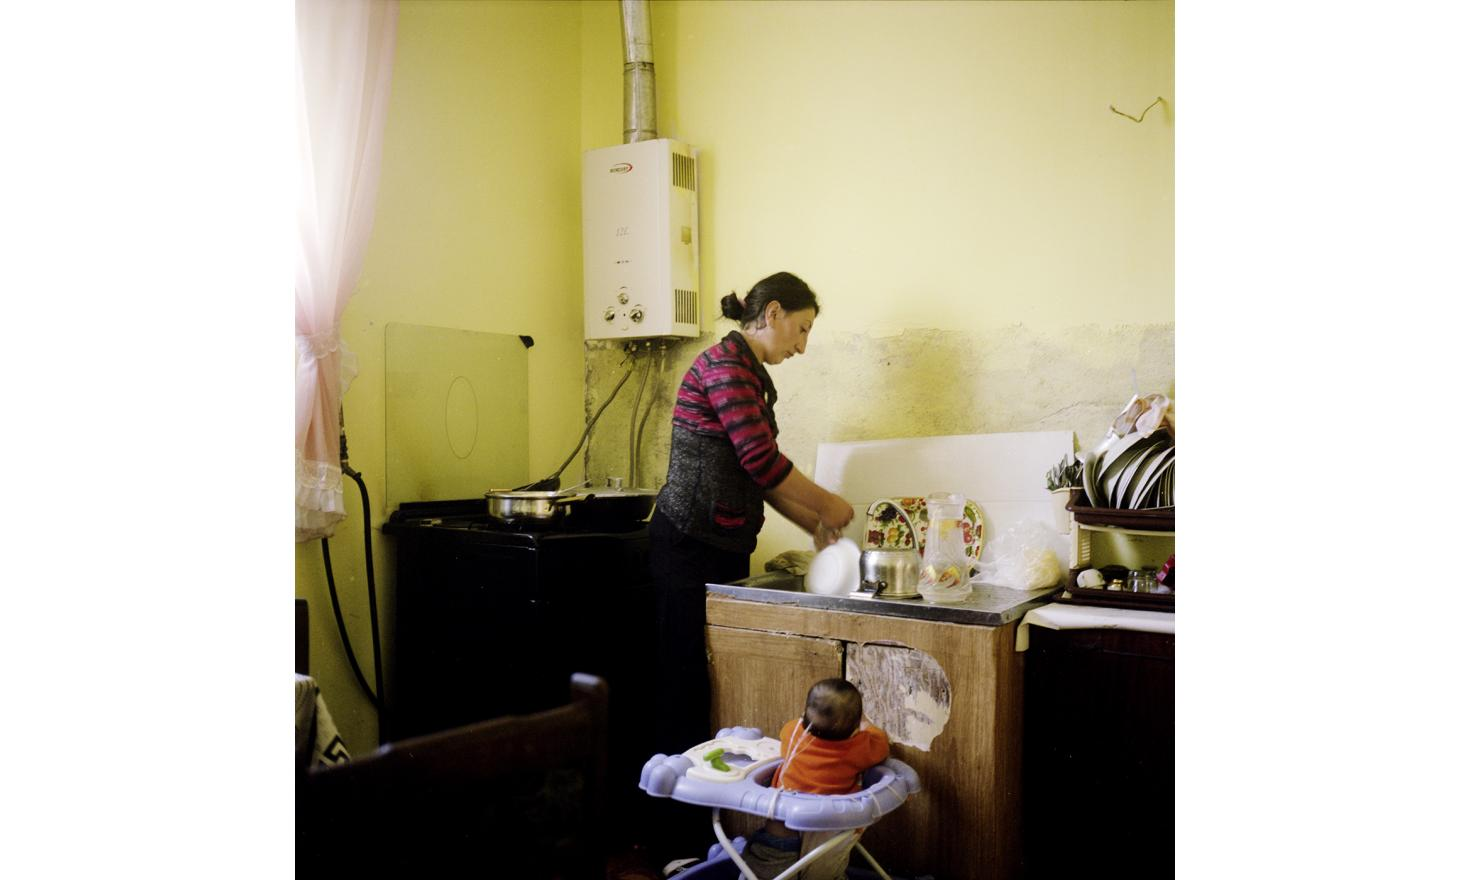 At Anoush's and Ruzanna's house. Ruzanna is doing the dishes while she must keep a look on her young daughter Naïre